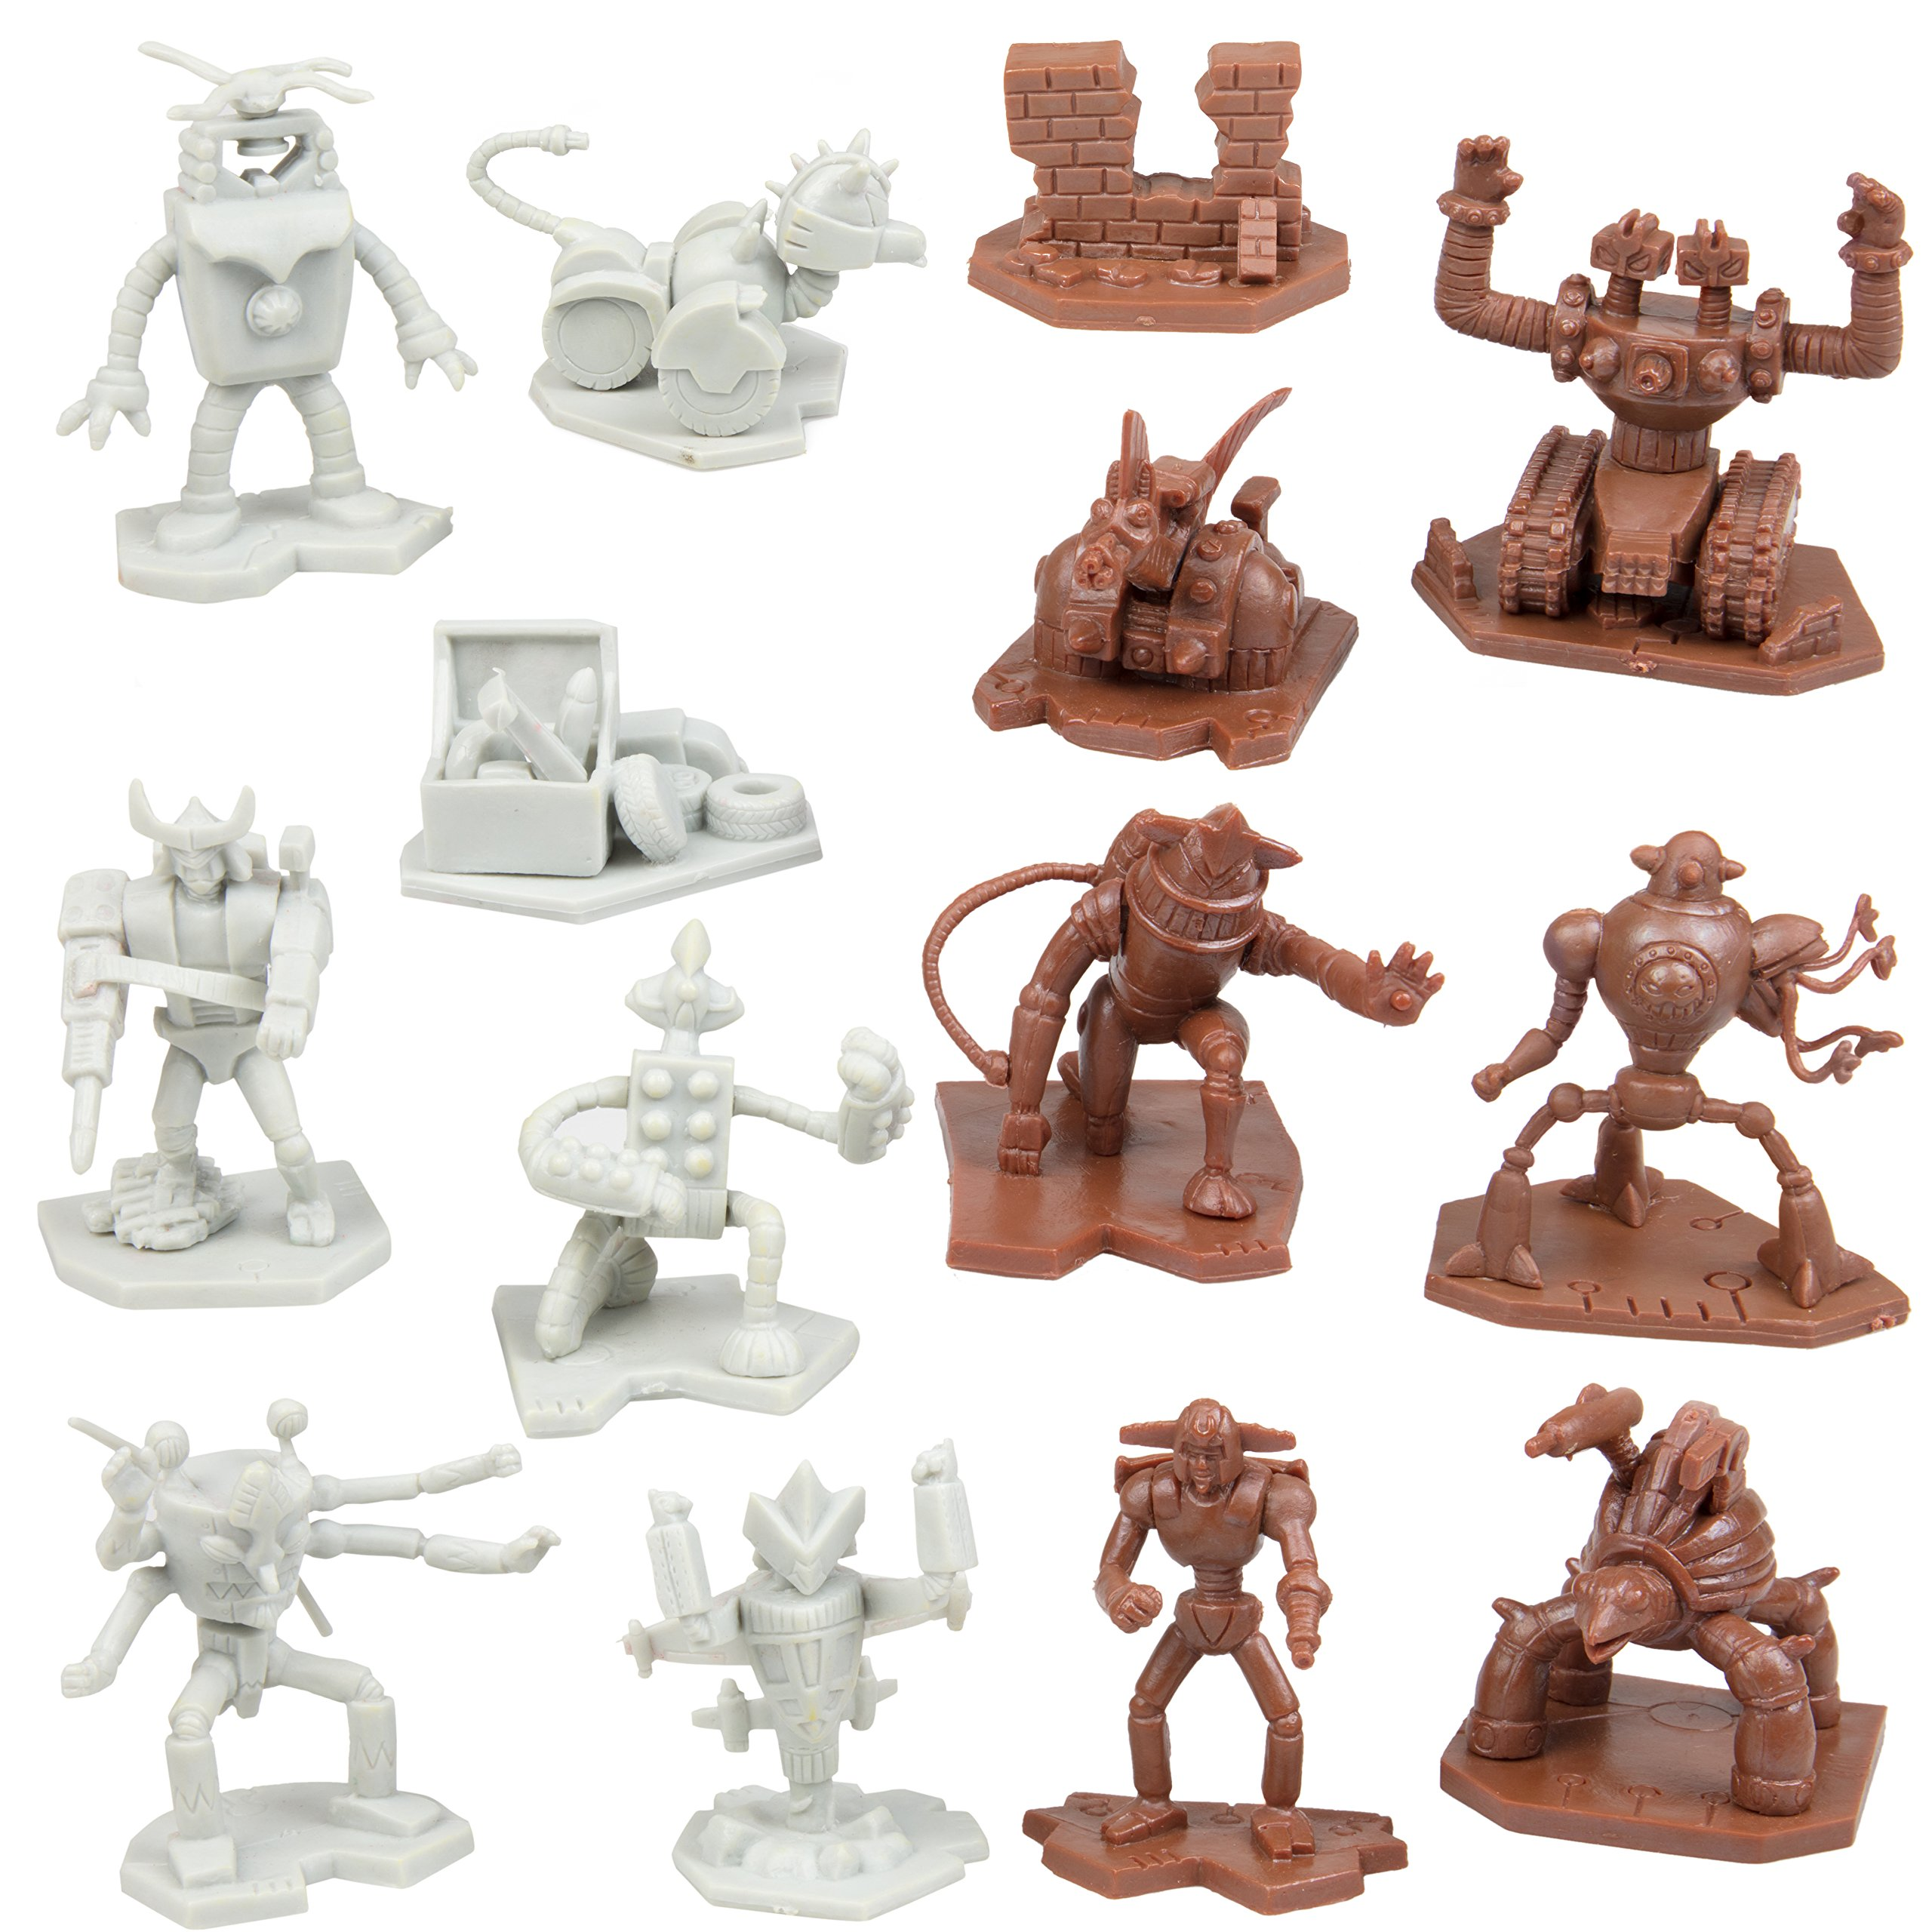 Scs Direct Robot Fantasy Sci Fi Action Figures 52 Ready For